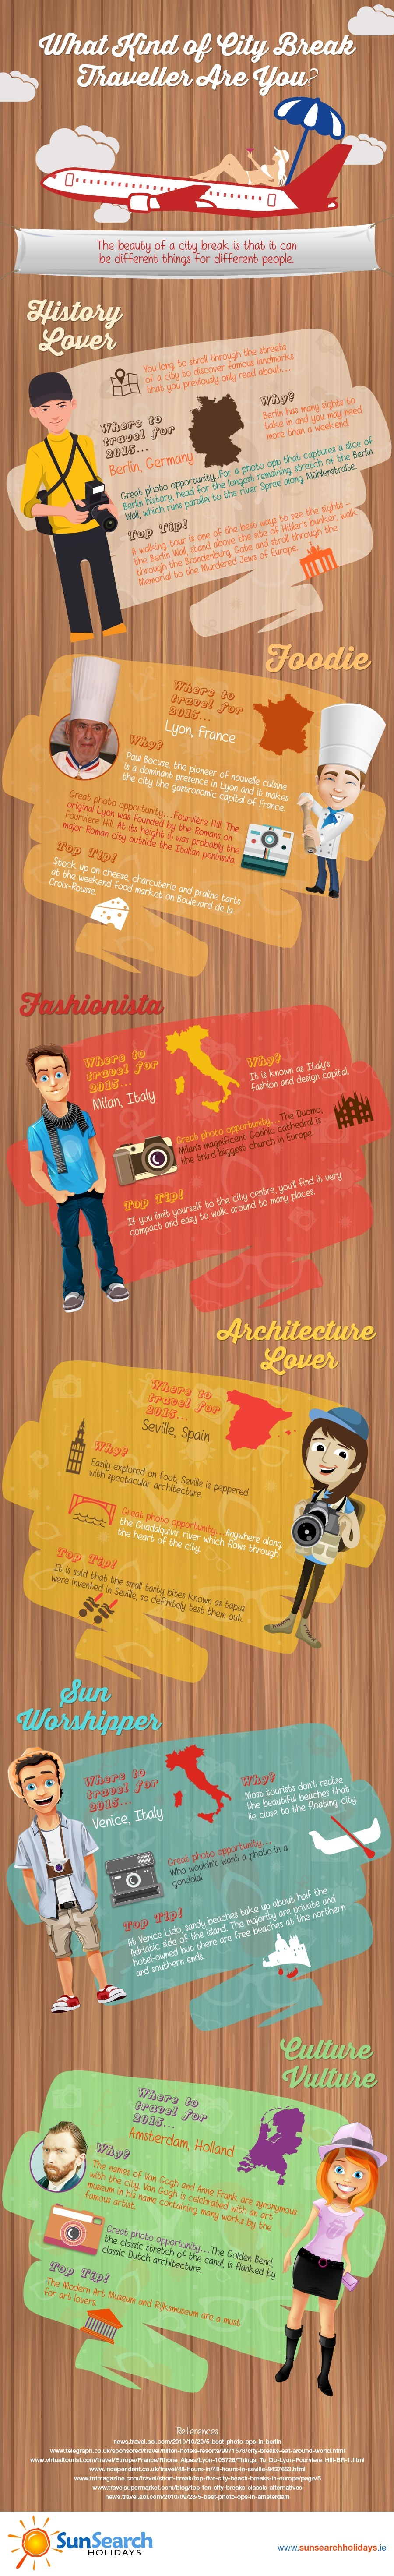 What kind of a City Break Traveller Are You? Infographic by SunSearchHolidays.